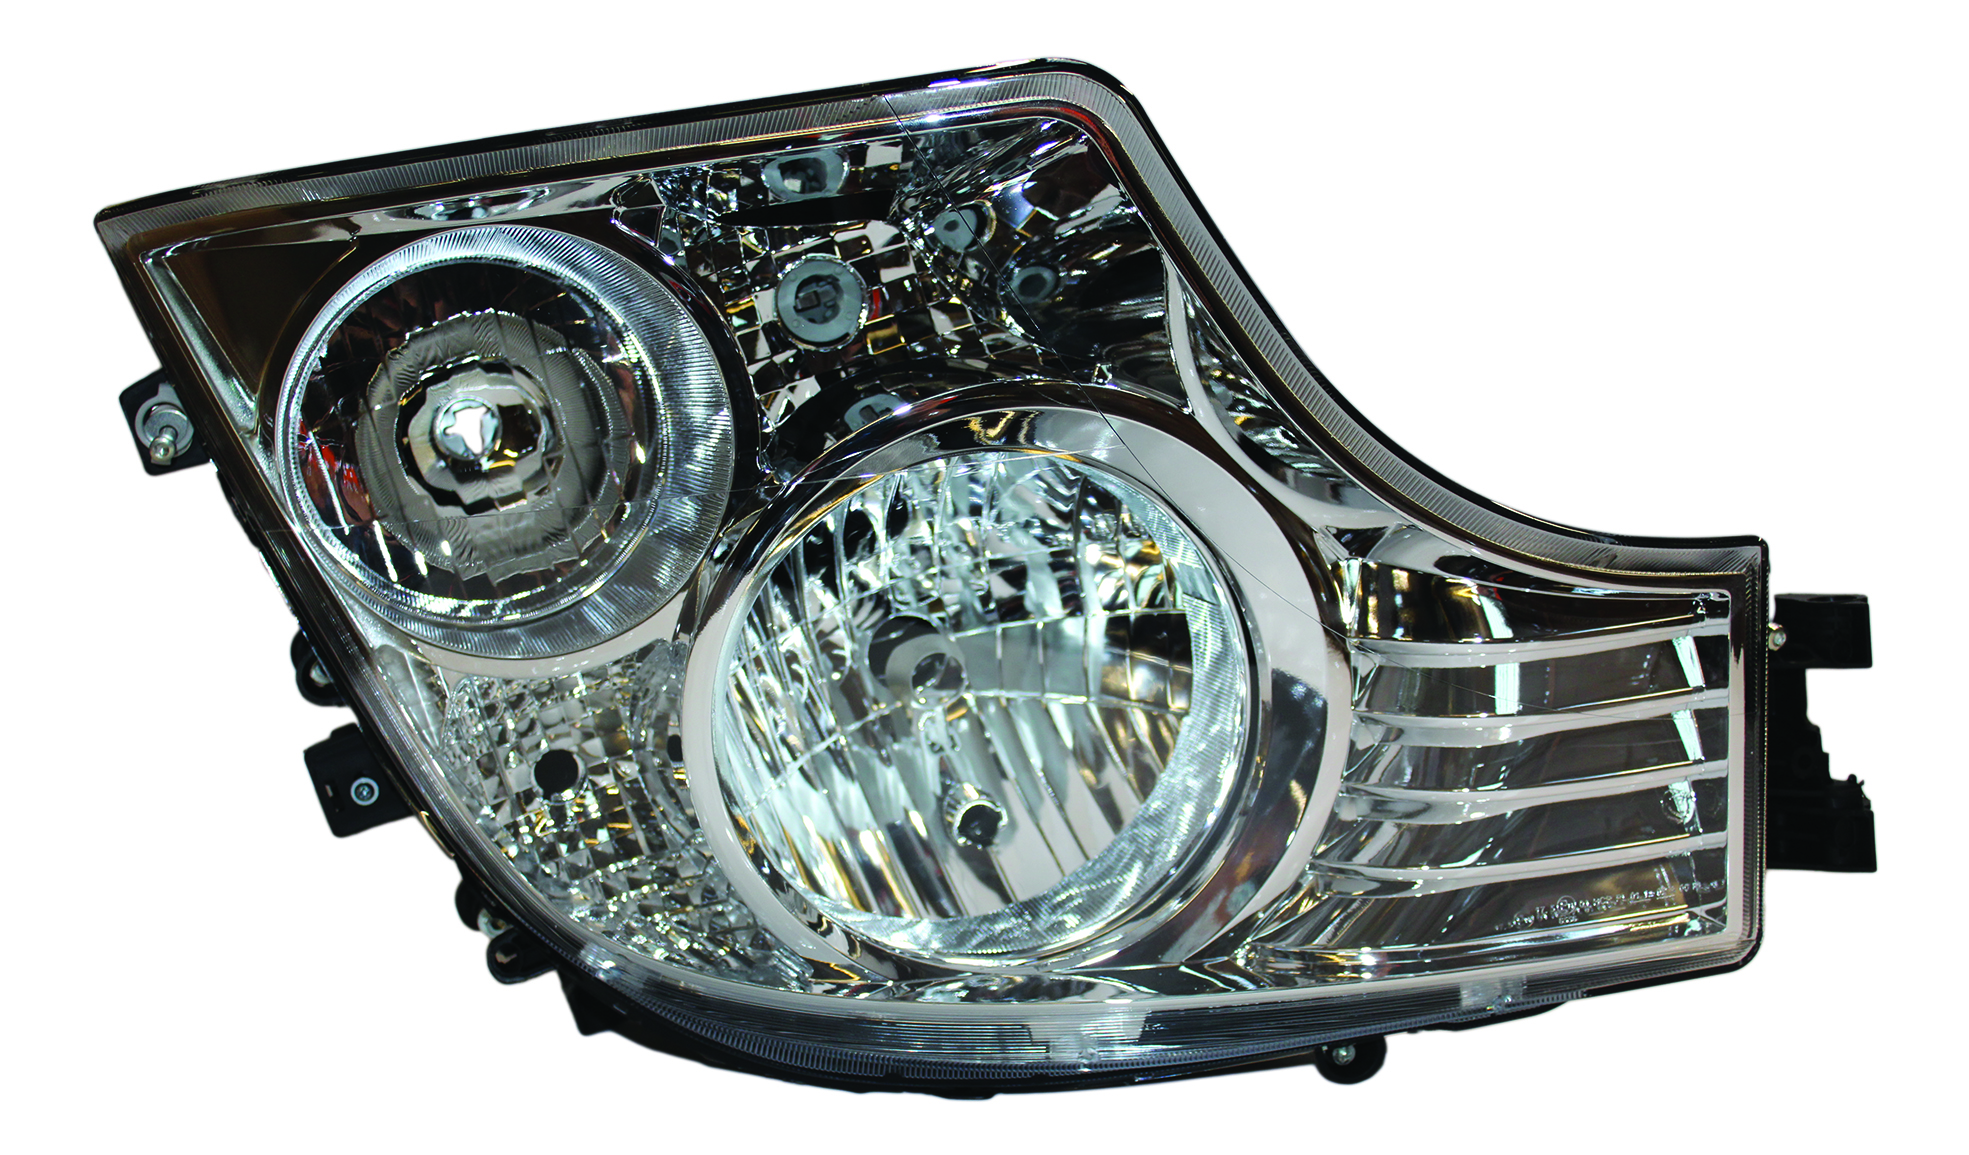 MERCEDES-BENZ ACTROS MP4 HEADLAMP OFFSIDE